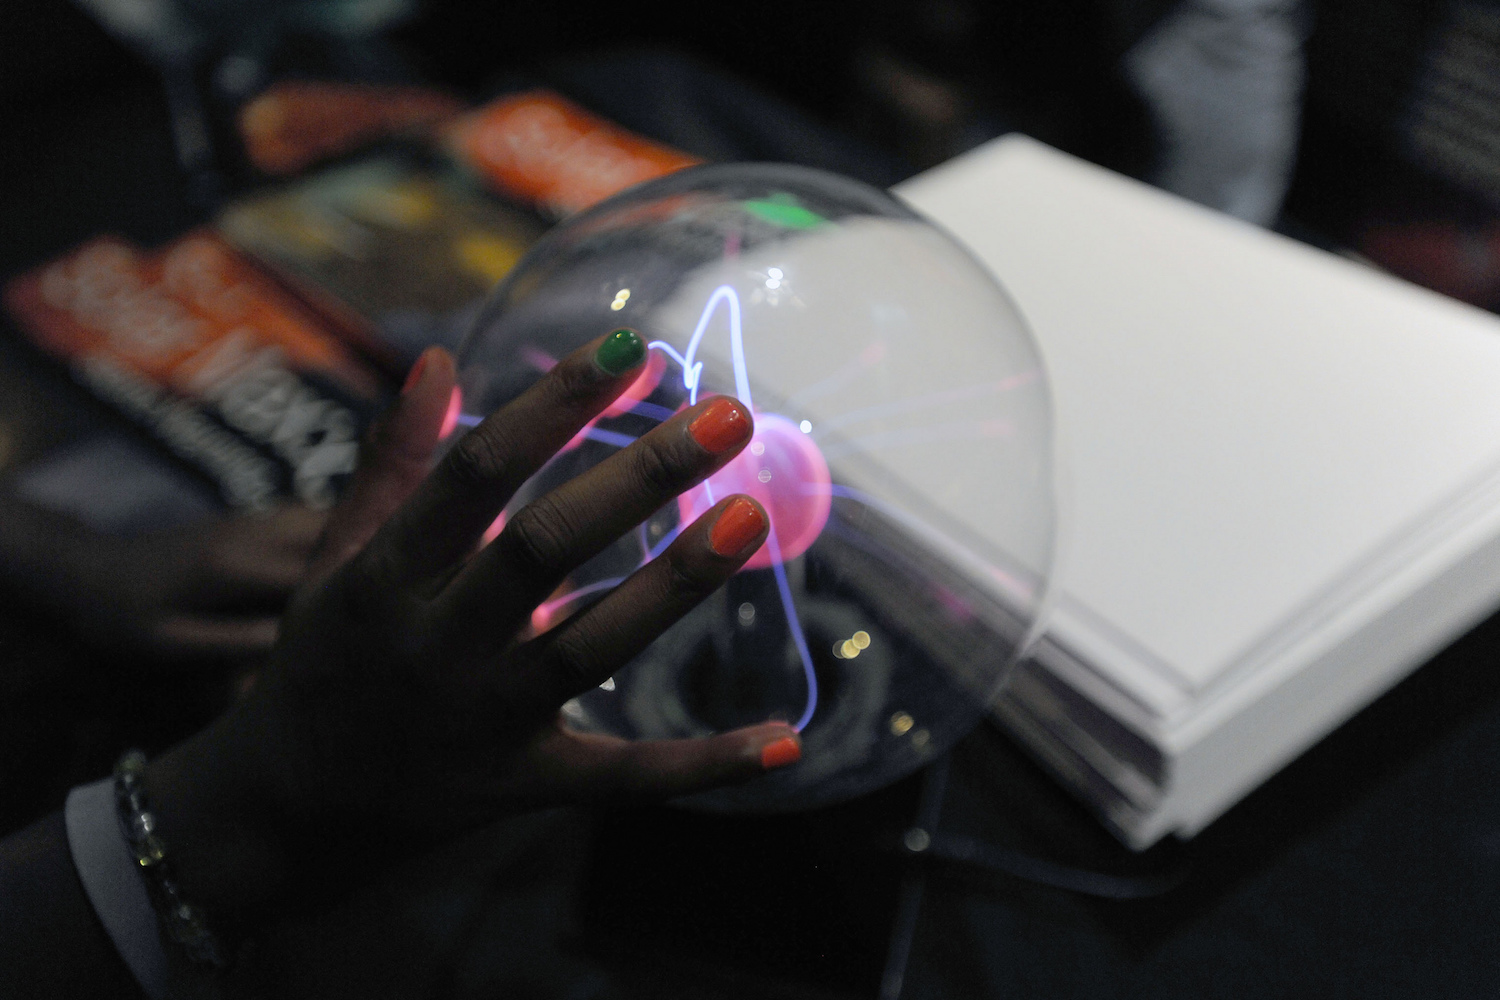 Hands-on interaction with physical representations of complex or abstract ideas can boost student confidence, engagement and interest in STEM learning areas.   NASA Goddard Space Flight Center/Flickr  (CC BY 2.0)